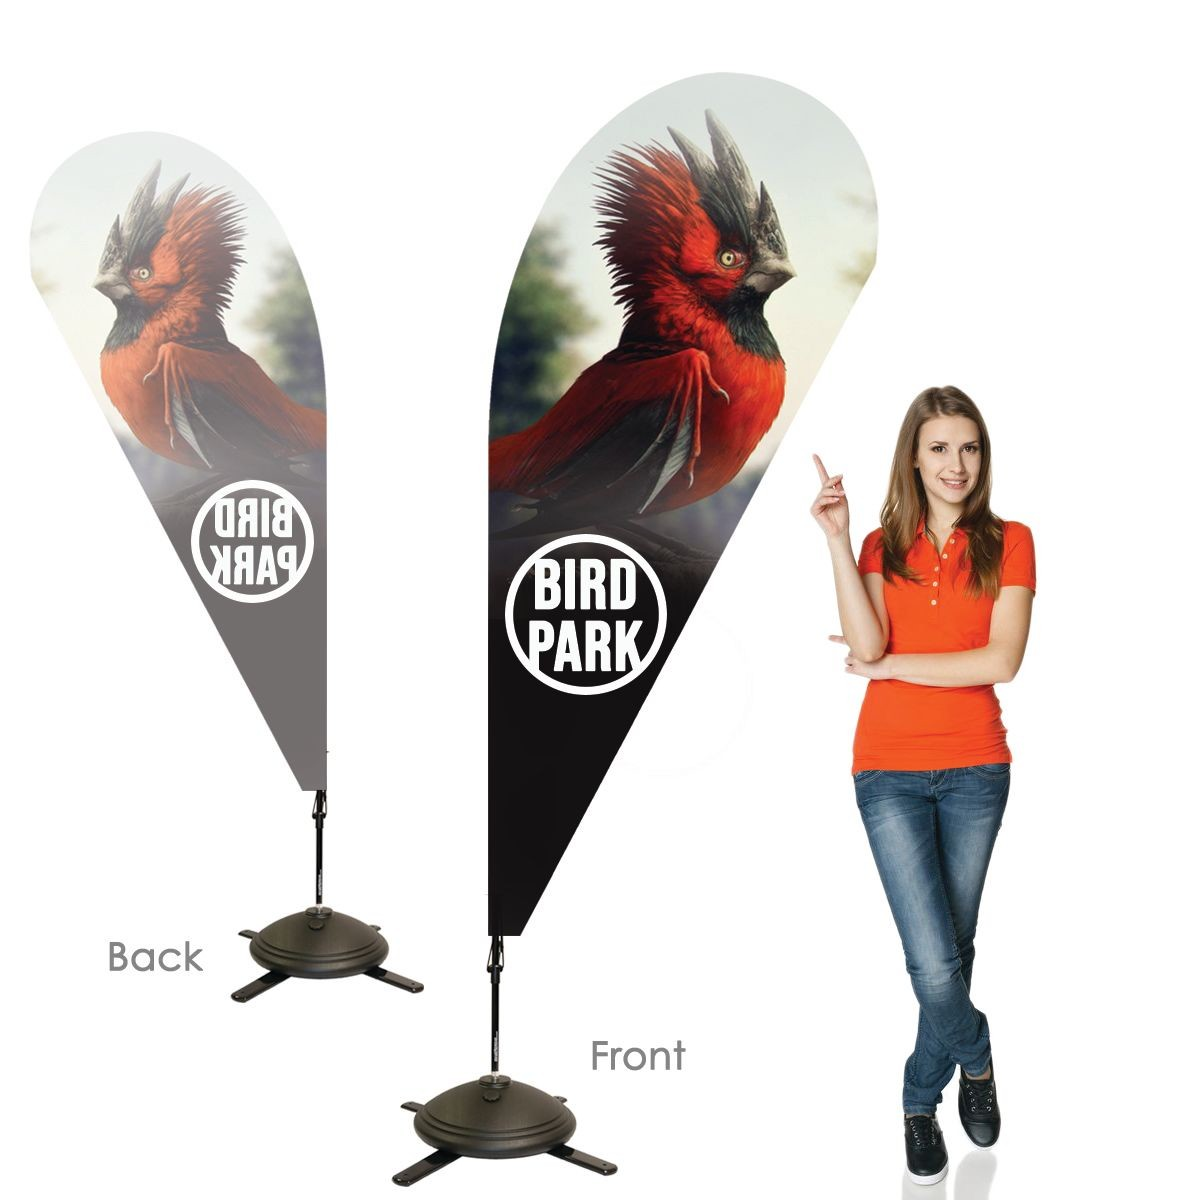 Single Sided Teardrop Banners with Right Facing Graphics